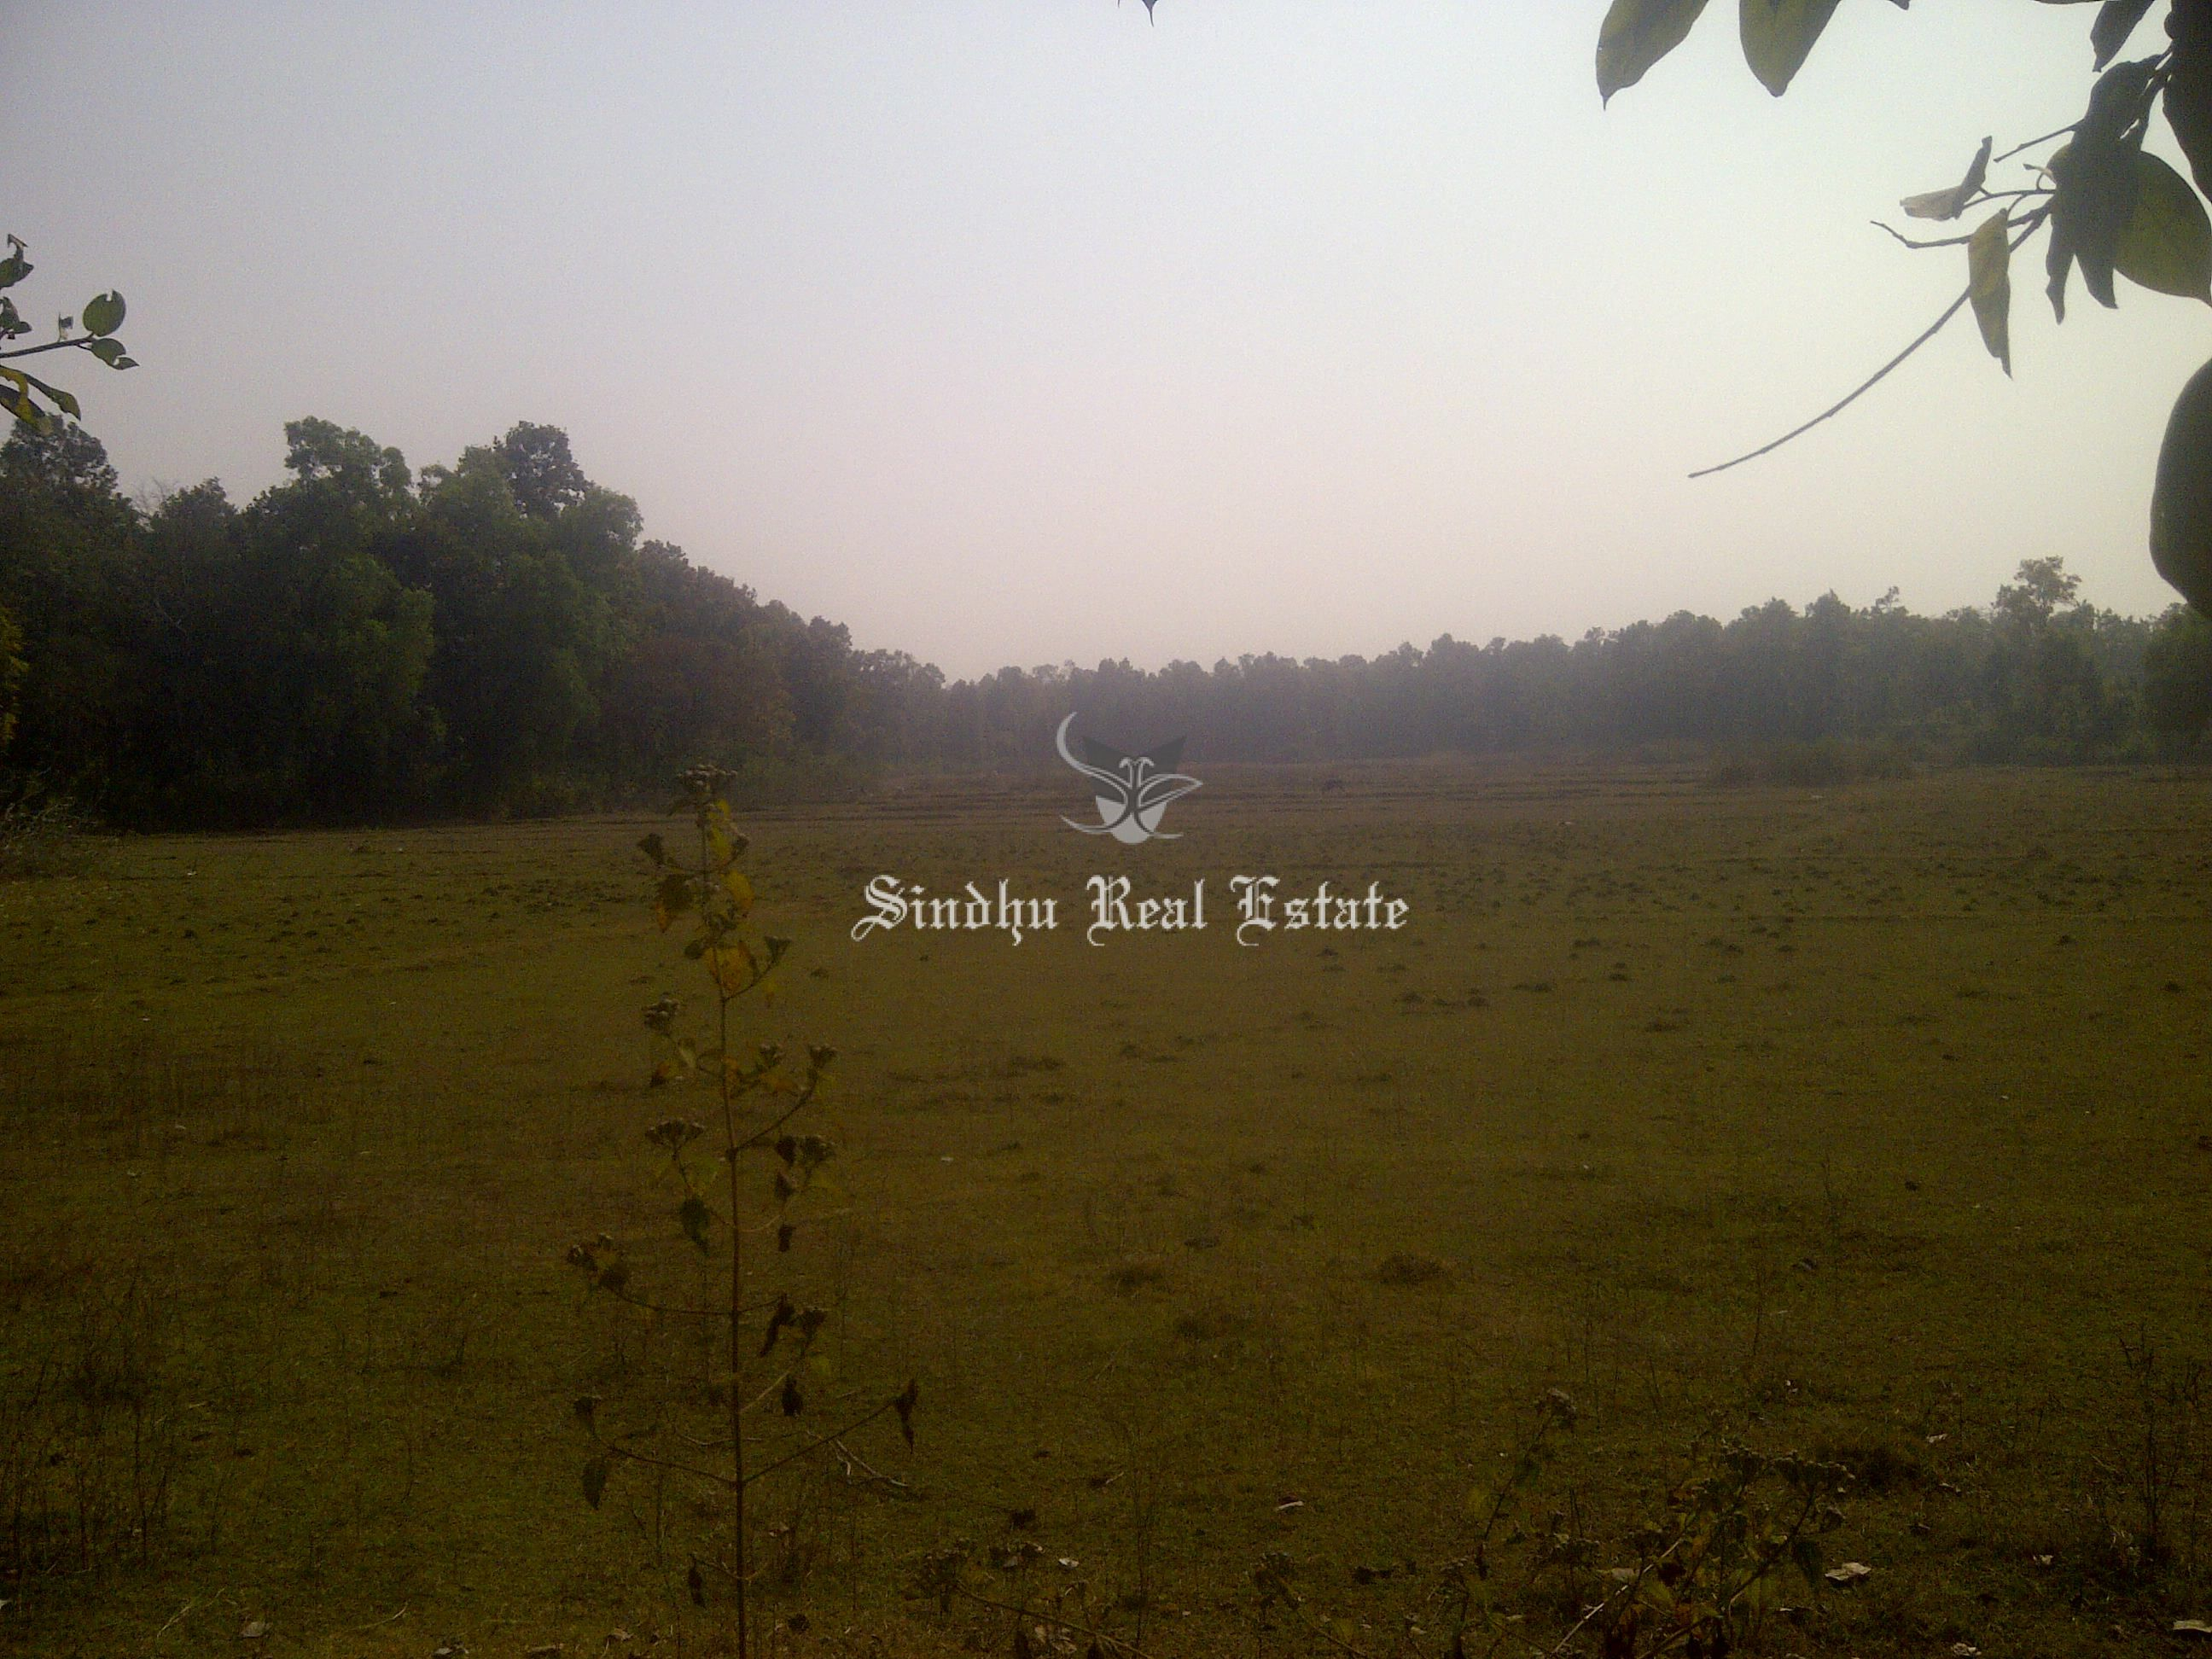 Attractive Commercial Land in Baruipur